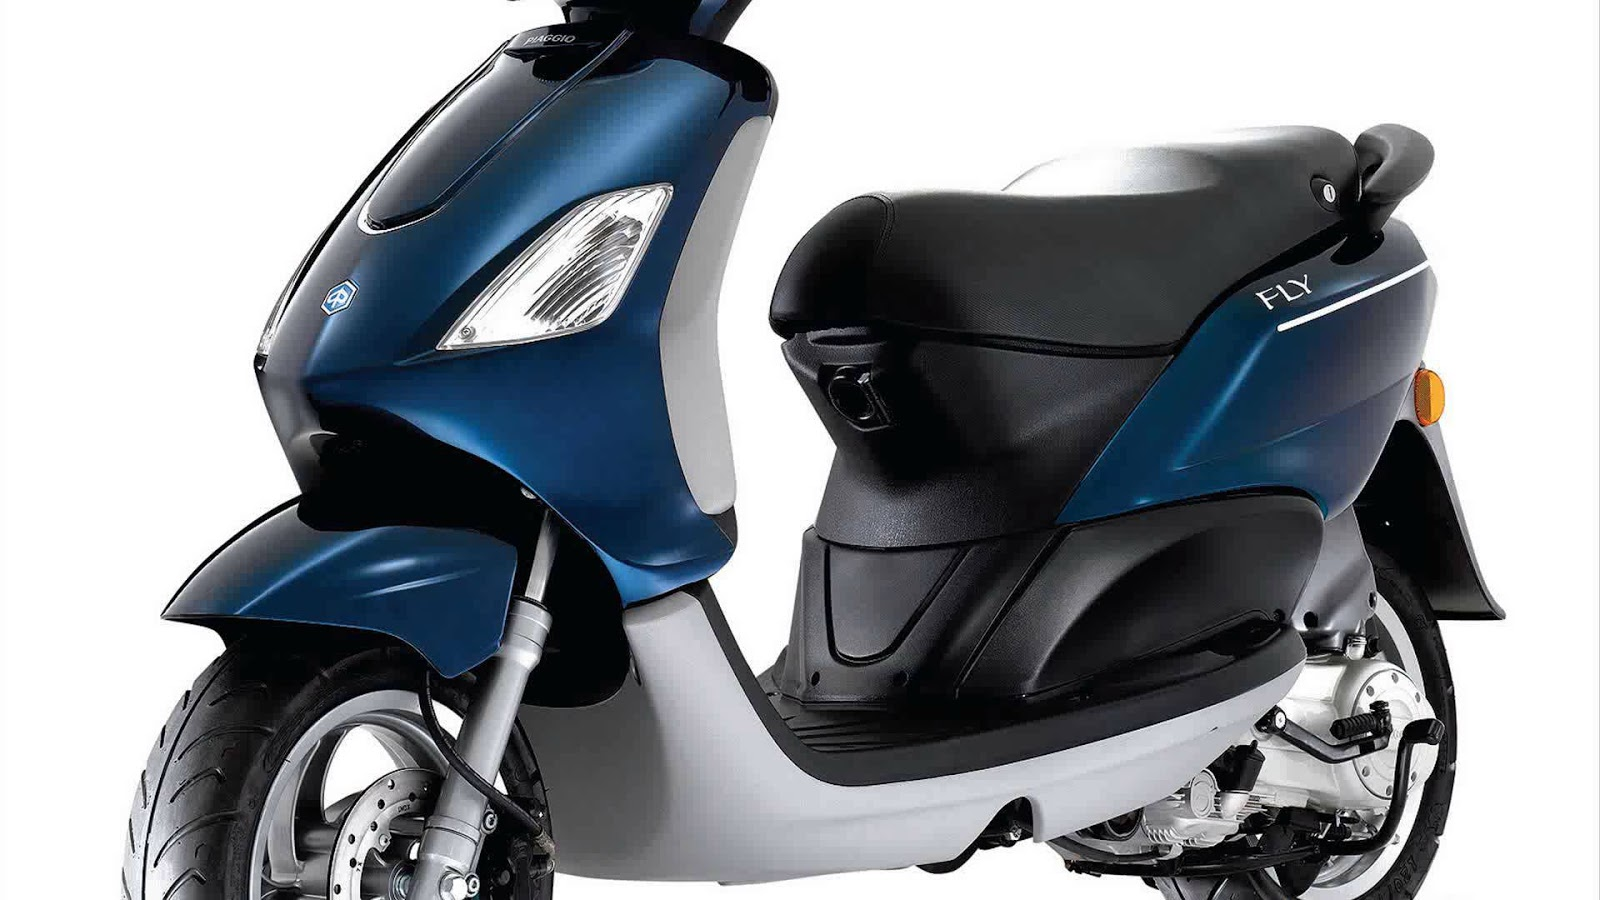 new 2016 piaggio fly 125cc scooter image for hd types cars. Black Bedroom Furniture Sets. Home Design Ideas